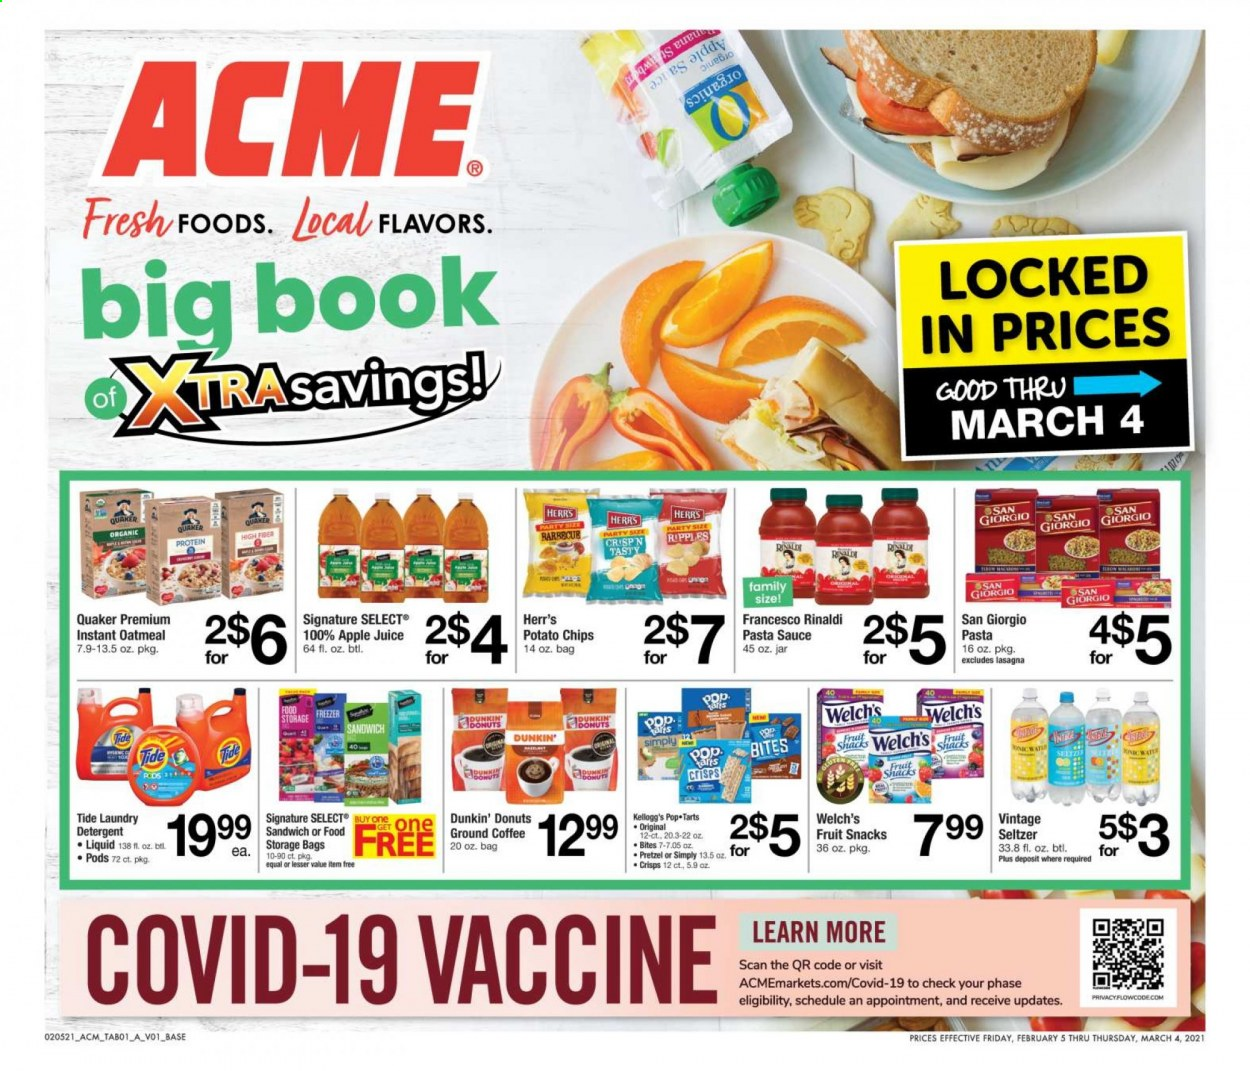 ACME Flyer - 02.05.2021 - 03.04.2021 - Sales products - pretzels, donut, Dunkin' Donuts, sandwich, sauce, Quaker, Welch's, Kellogg's, Pop-Tarts, fruit snacks, potato chips, chips, oatmeal, pasta sauce, apple juice, juice, seltzer water, coffee, ground coffee, detergent, Tide, laundry detergent, Nana, storage bag, bag. Page 1.